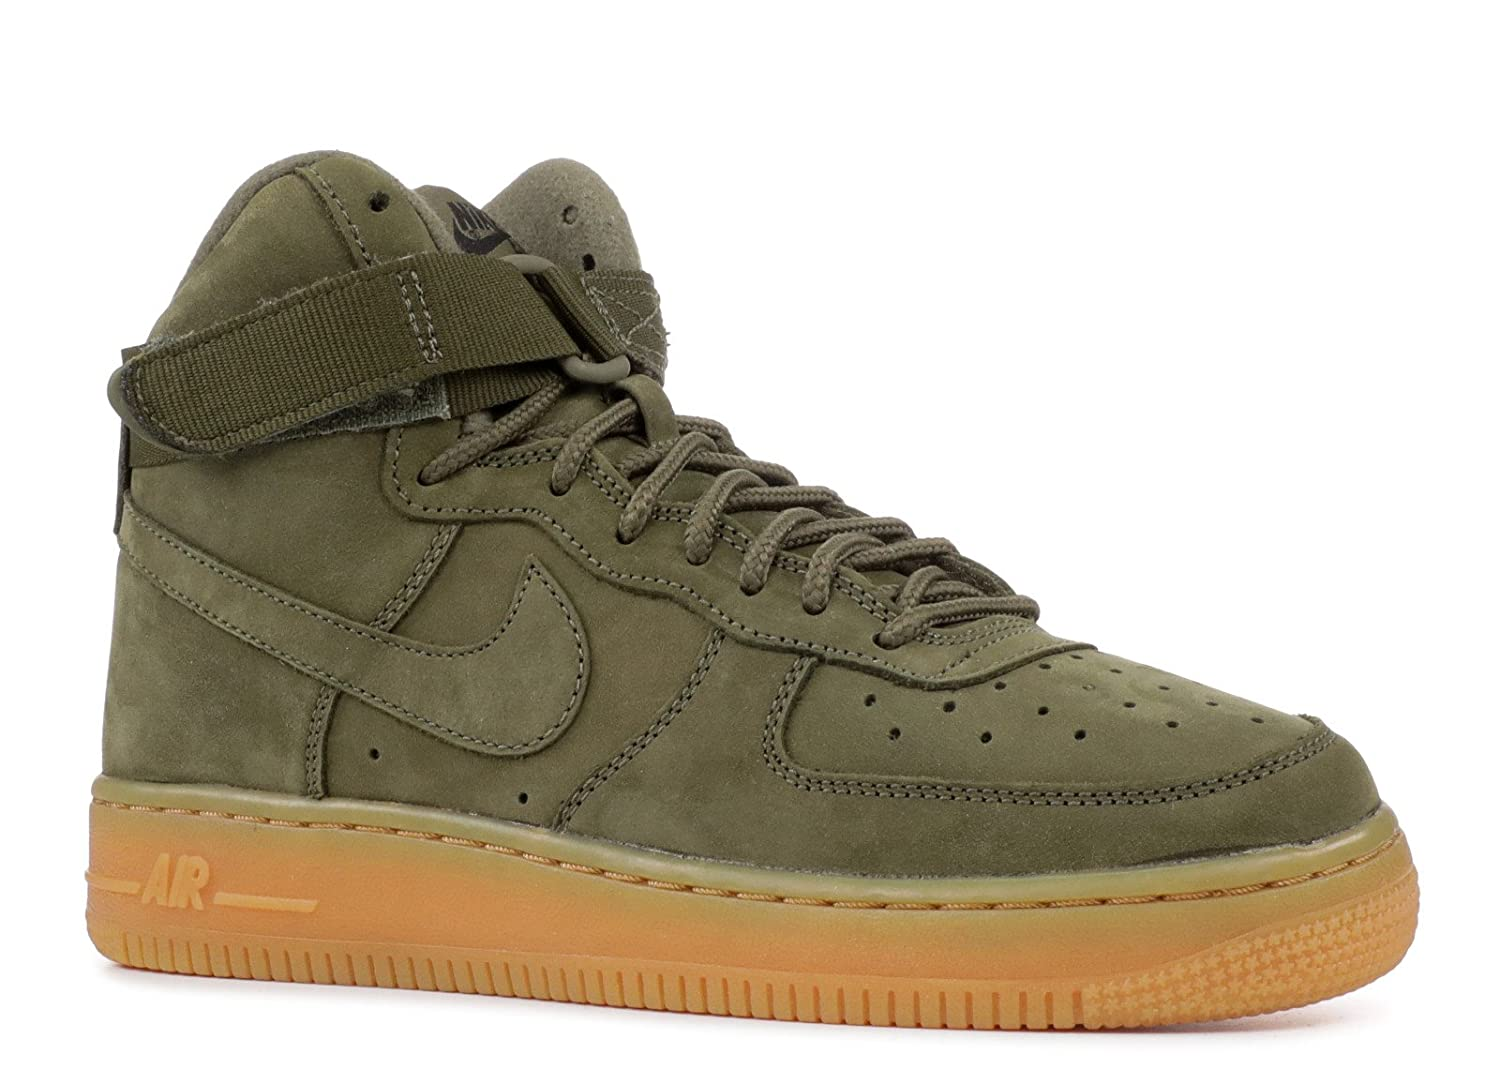 [NIKE - ナイキ] AIR FORCE 1 HIGH WB (GS) 'DARK GREEN' - 922066-202 - SIZE 4y (子供、ユニセックス)